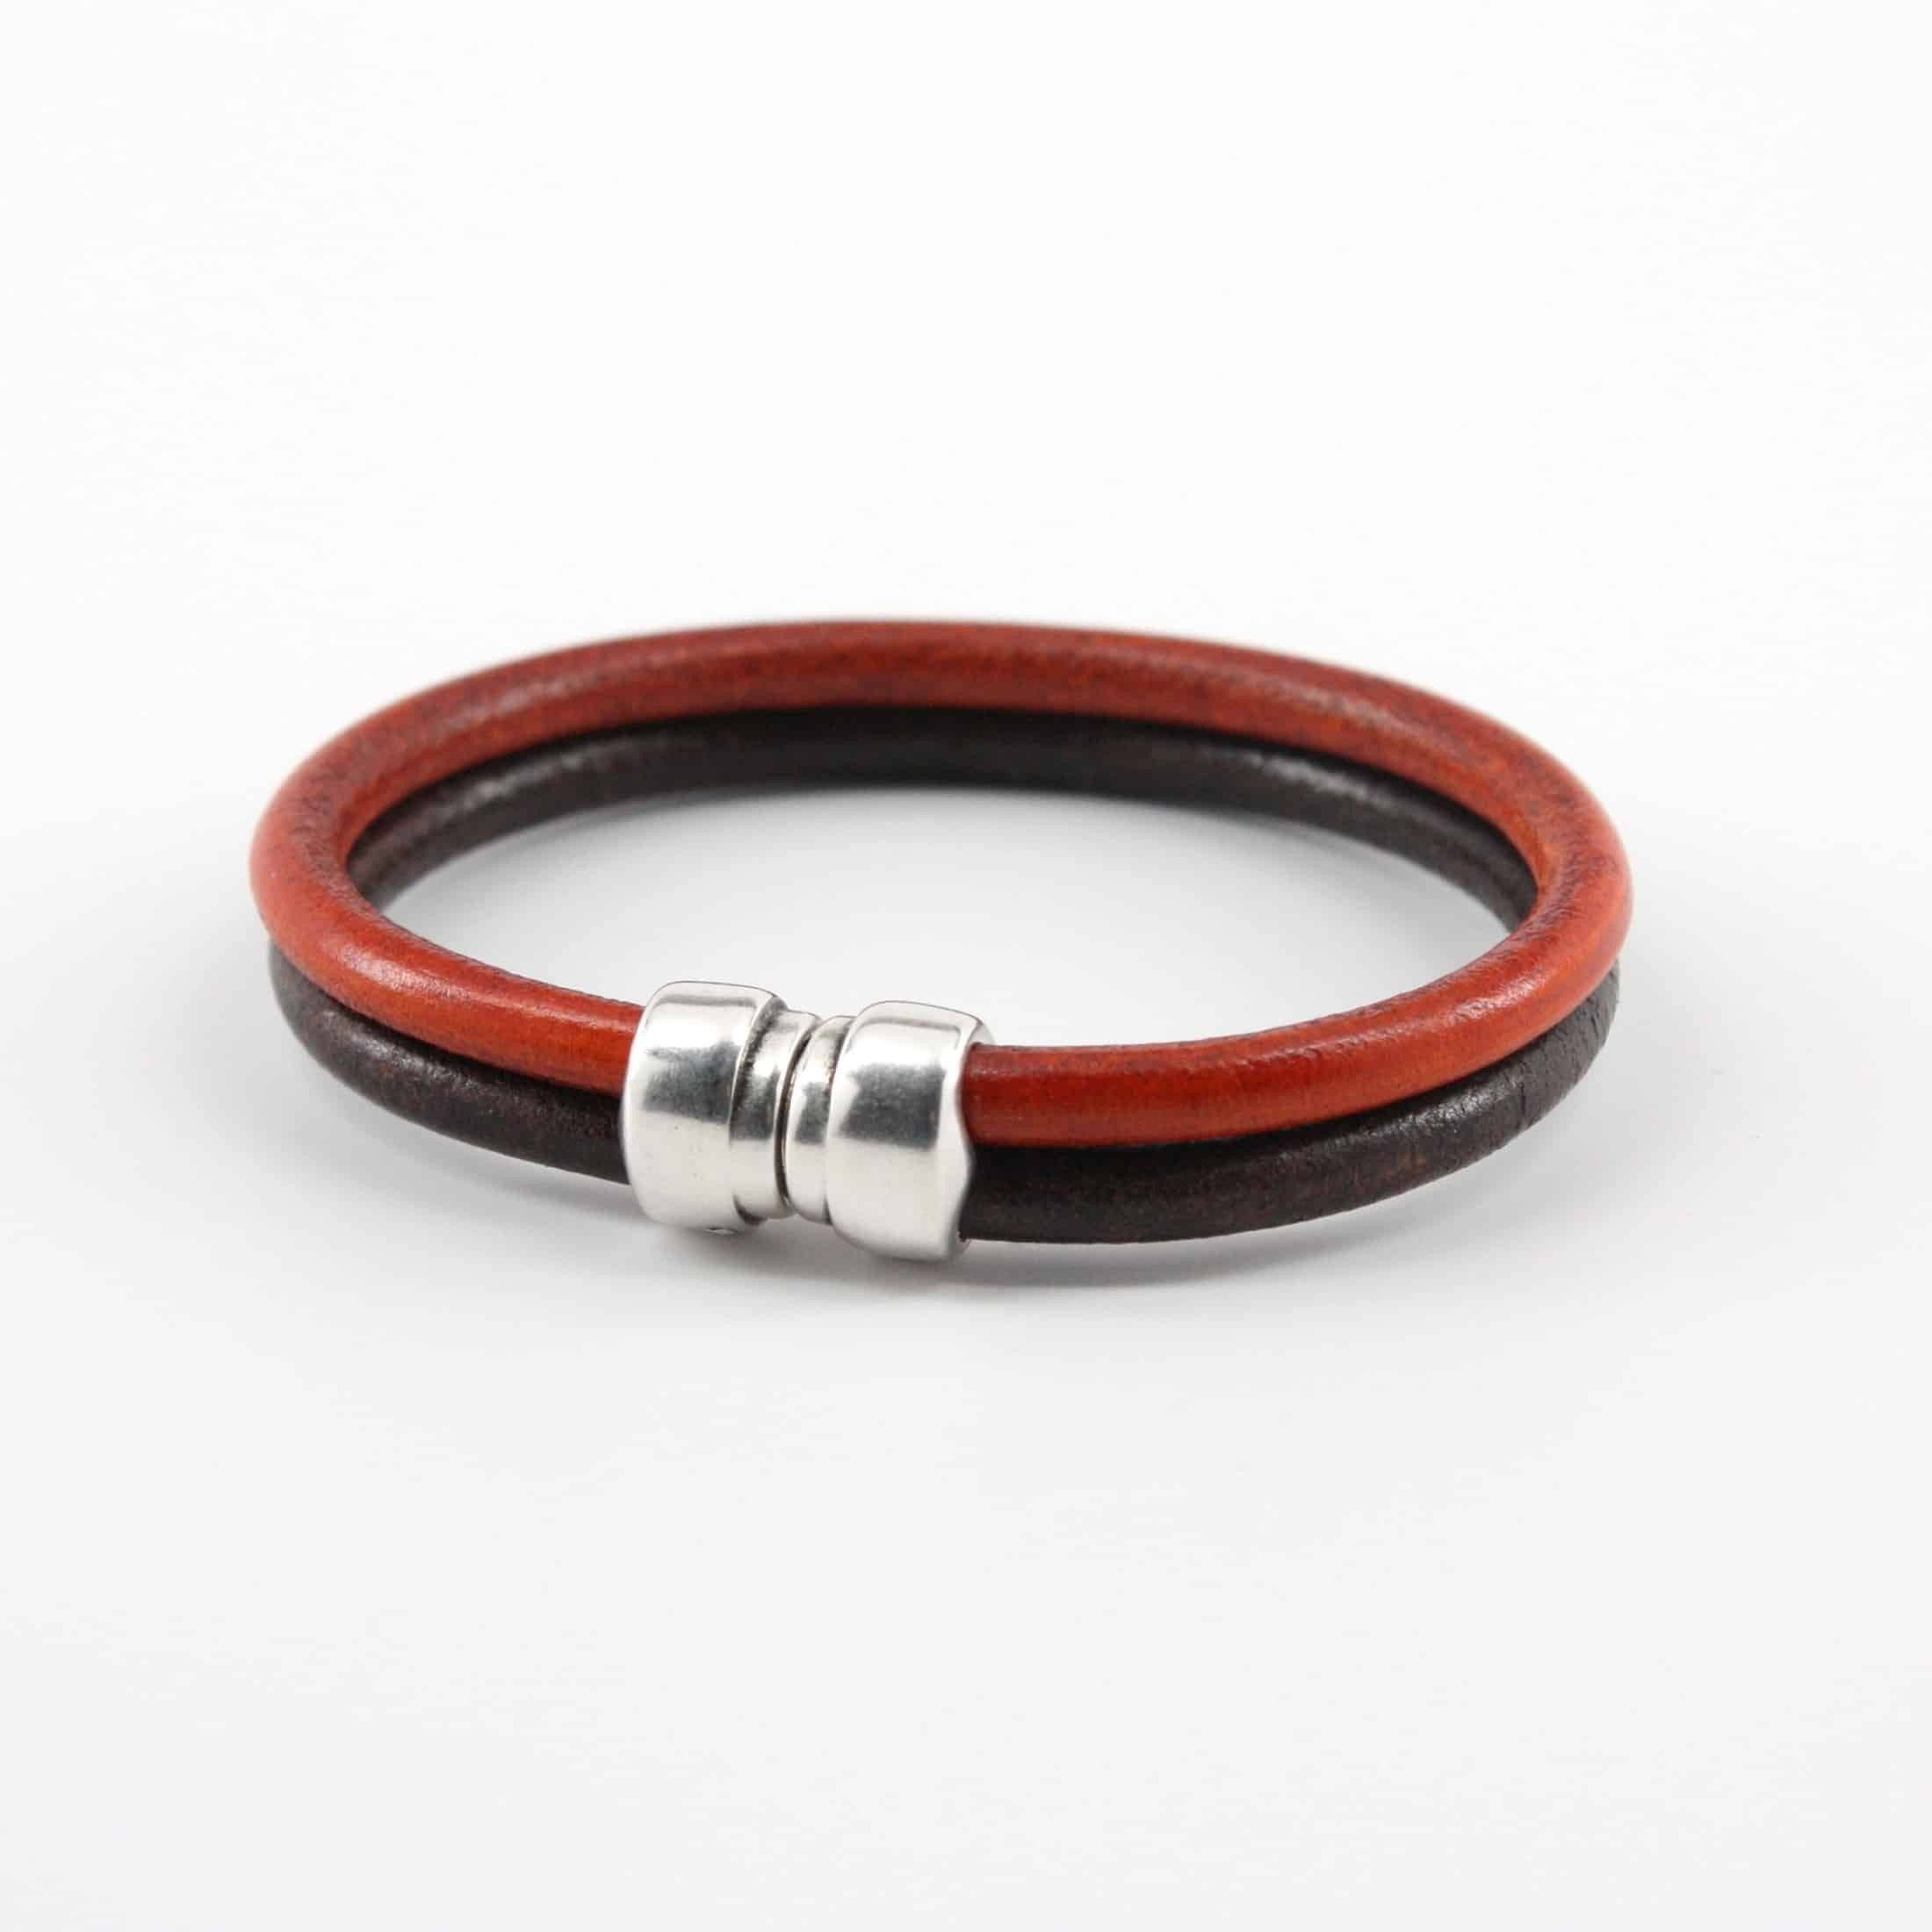 "Genuine Leather ""Art-Deco"" Bracelet - Brown/Orange,BRACELET,Gent Row, 